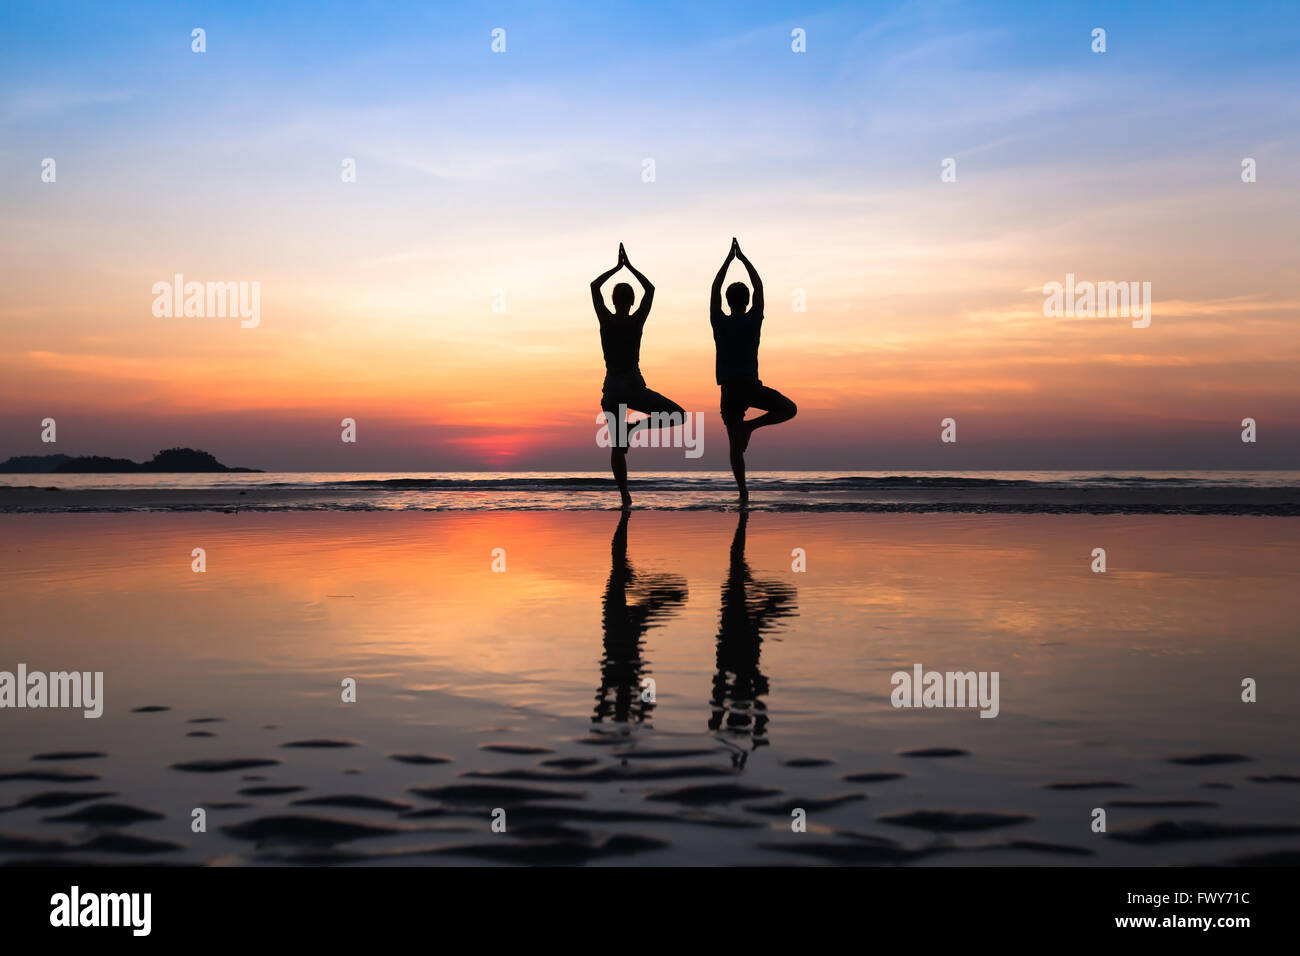 yoga on the beach, group of people practicing healthy lifestyle - Stock Image